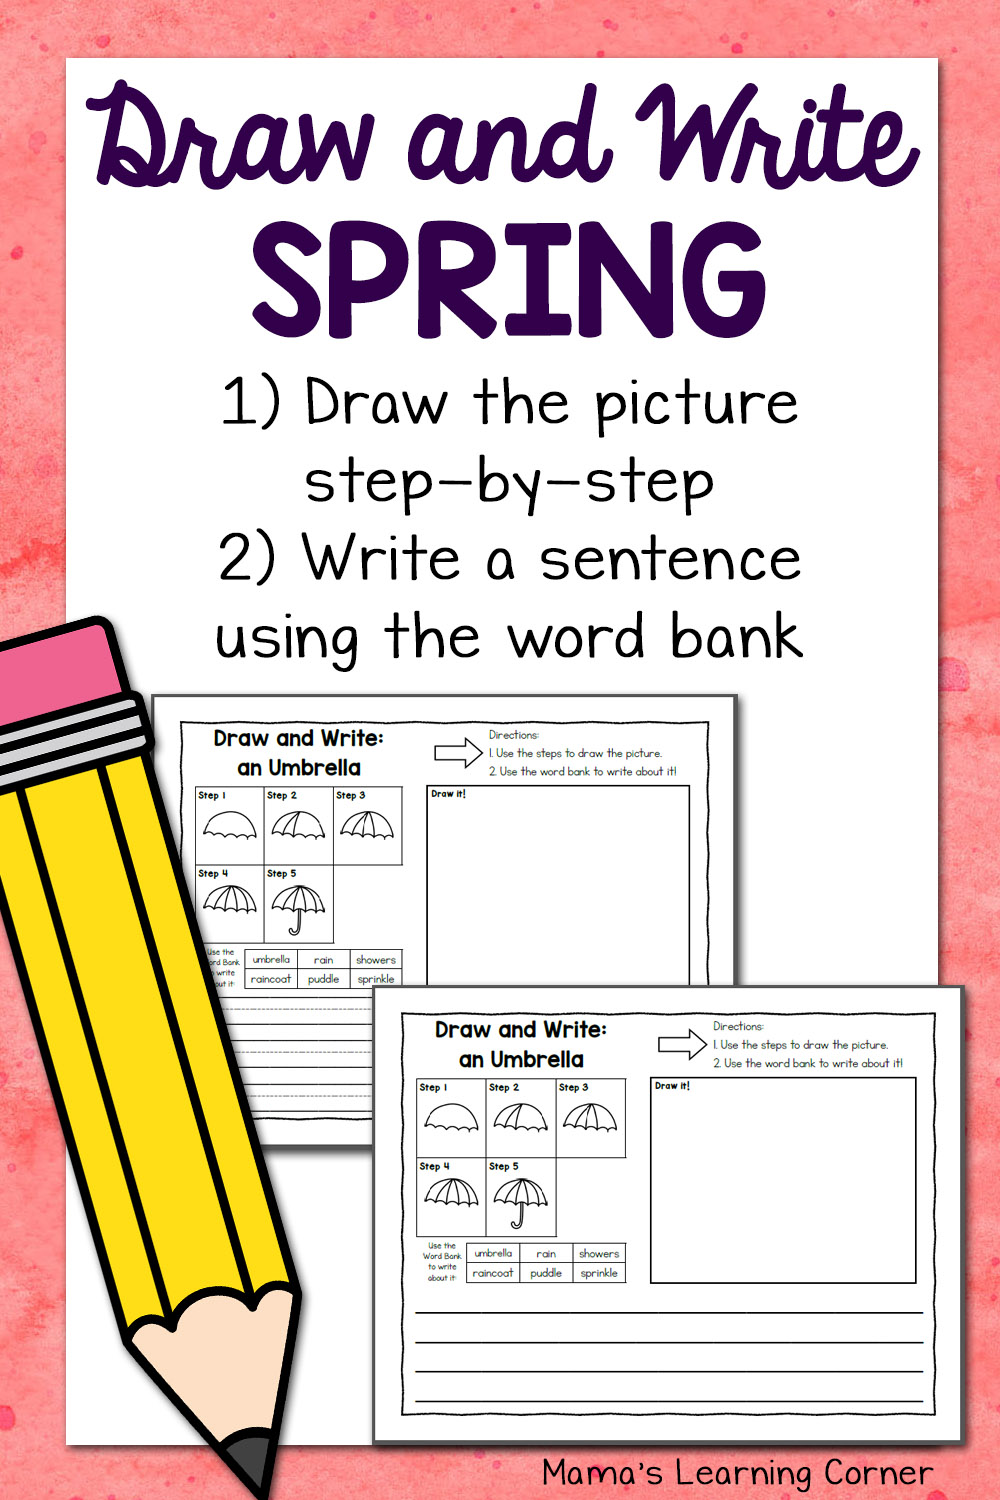 hight resolution of Spring Directed Draw and Write Worksheets - Mamas Learning Corner